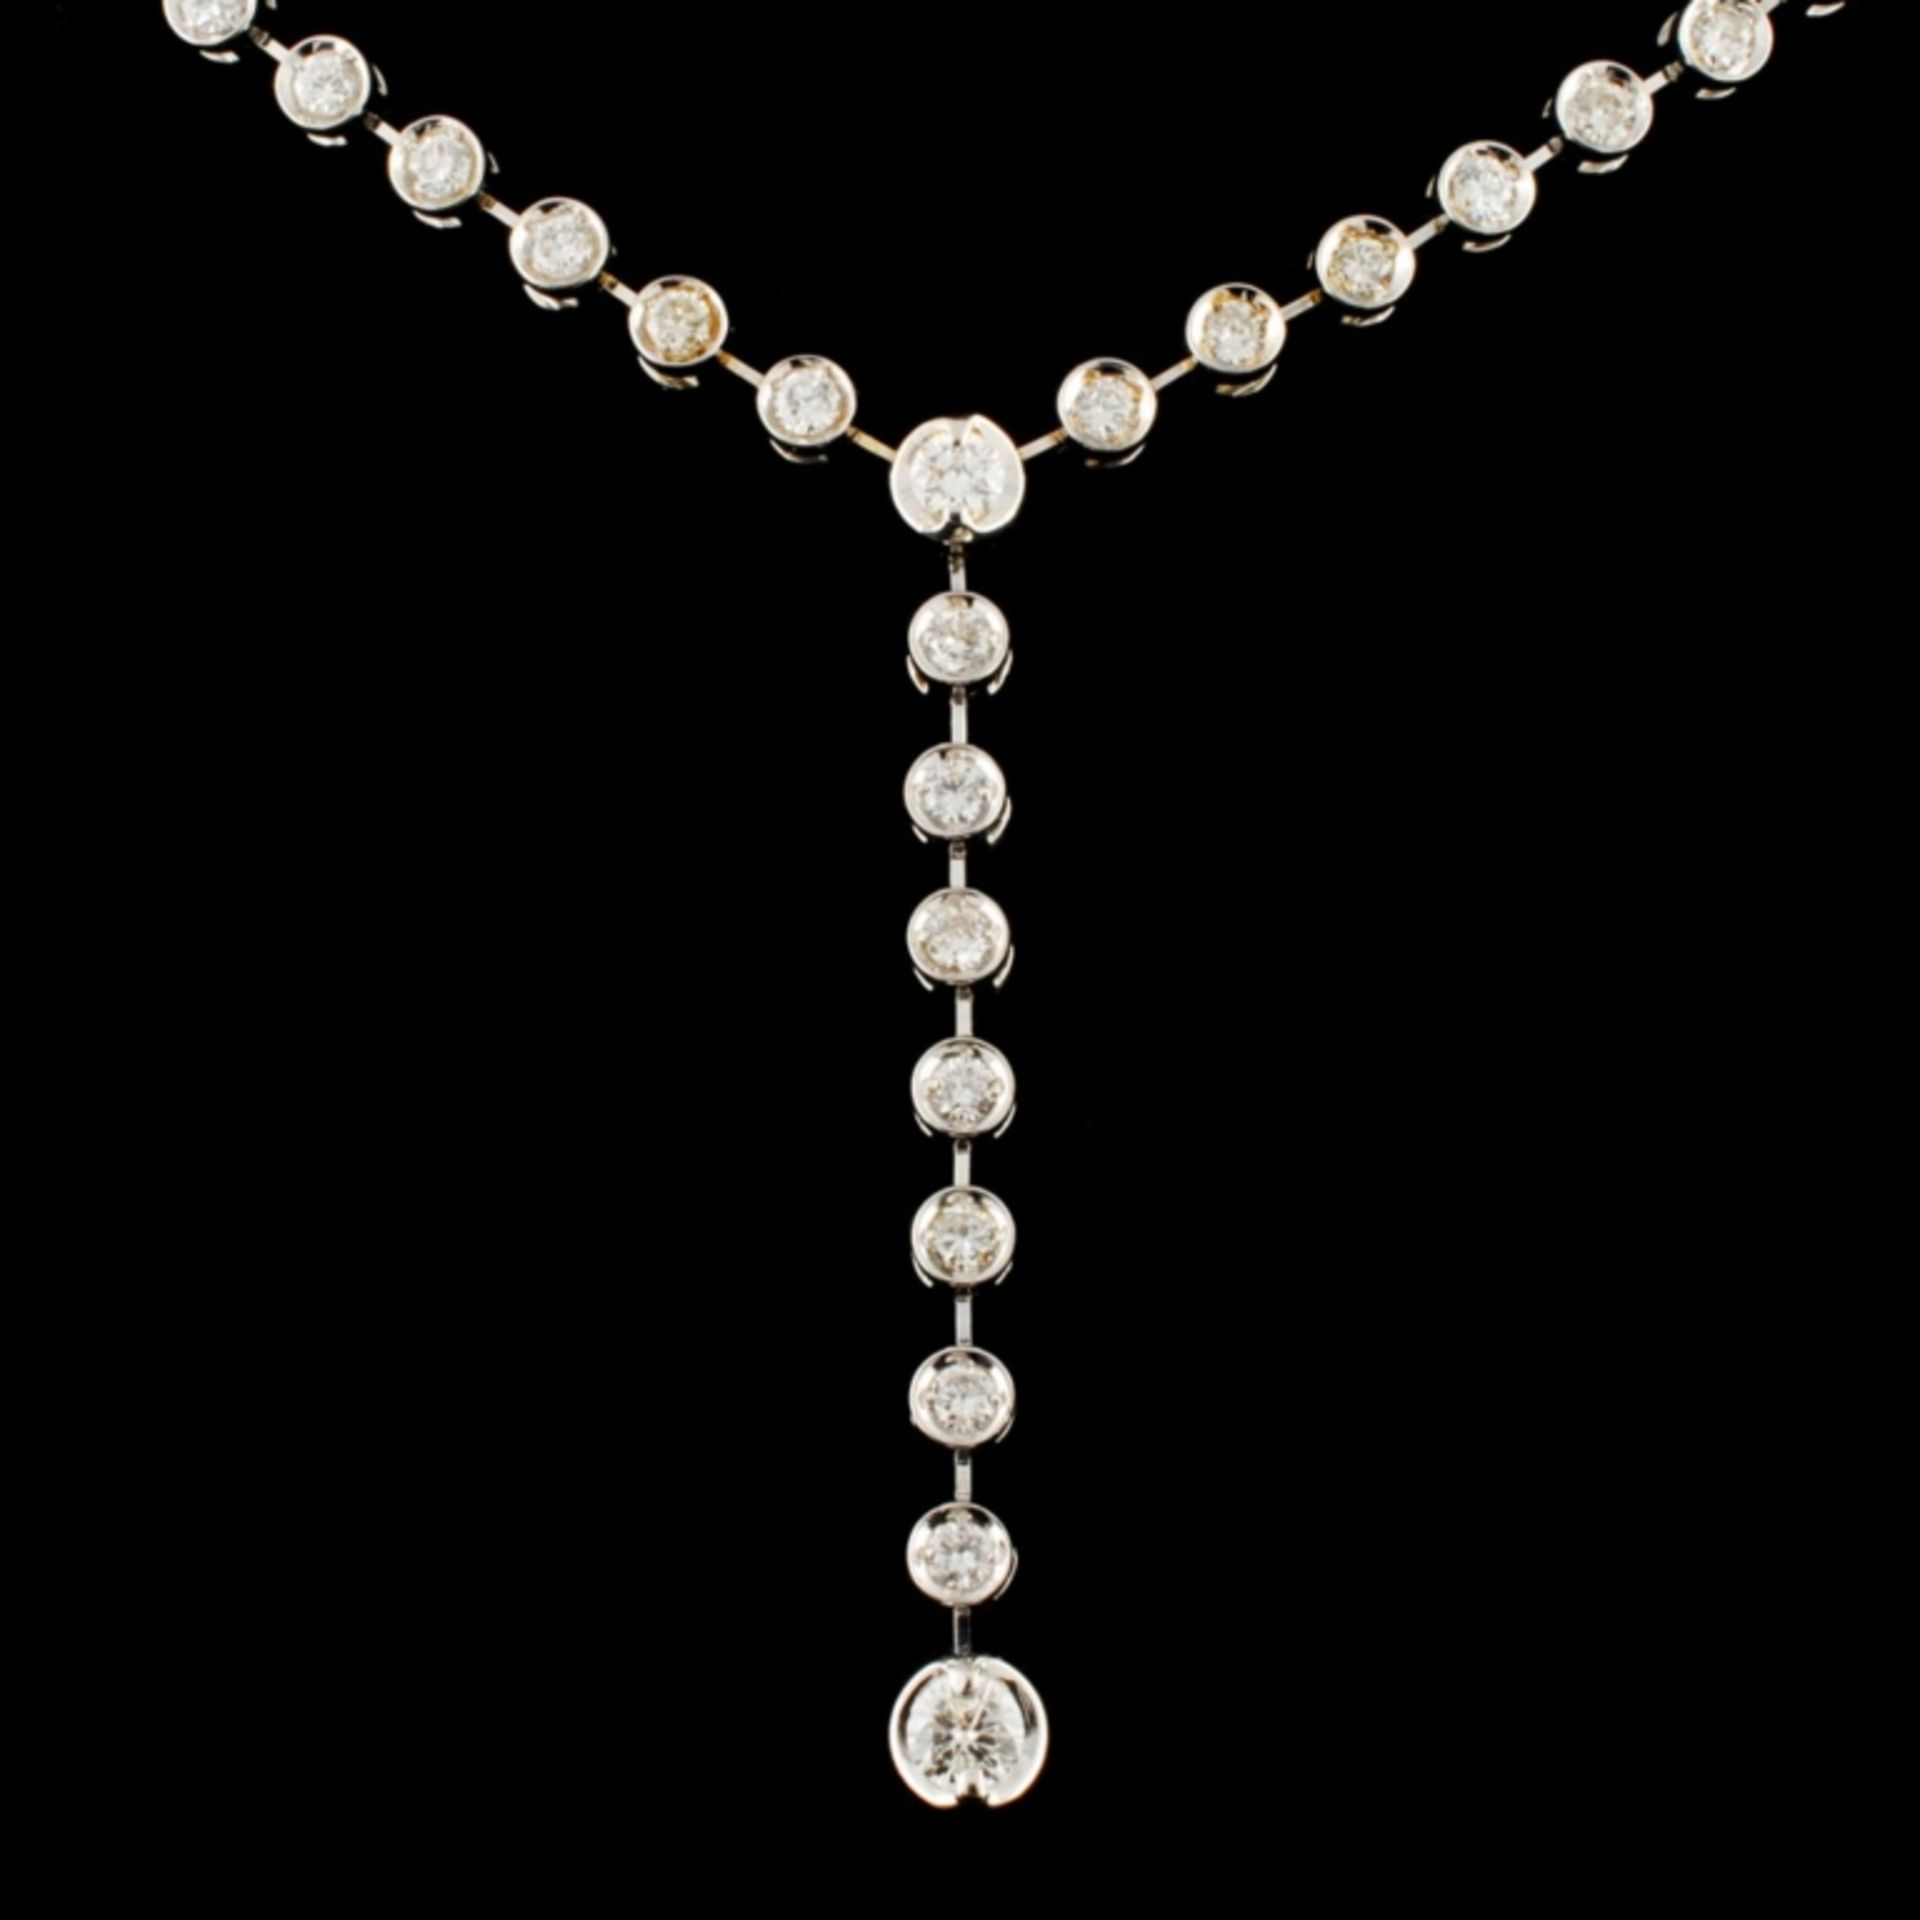 14K Gold 2.13ctw Diamond Necklace - Image 2 of 4